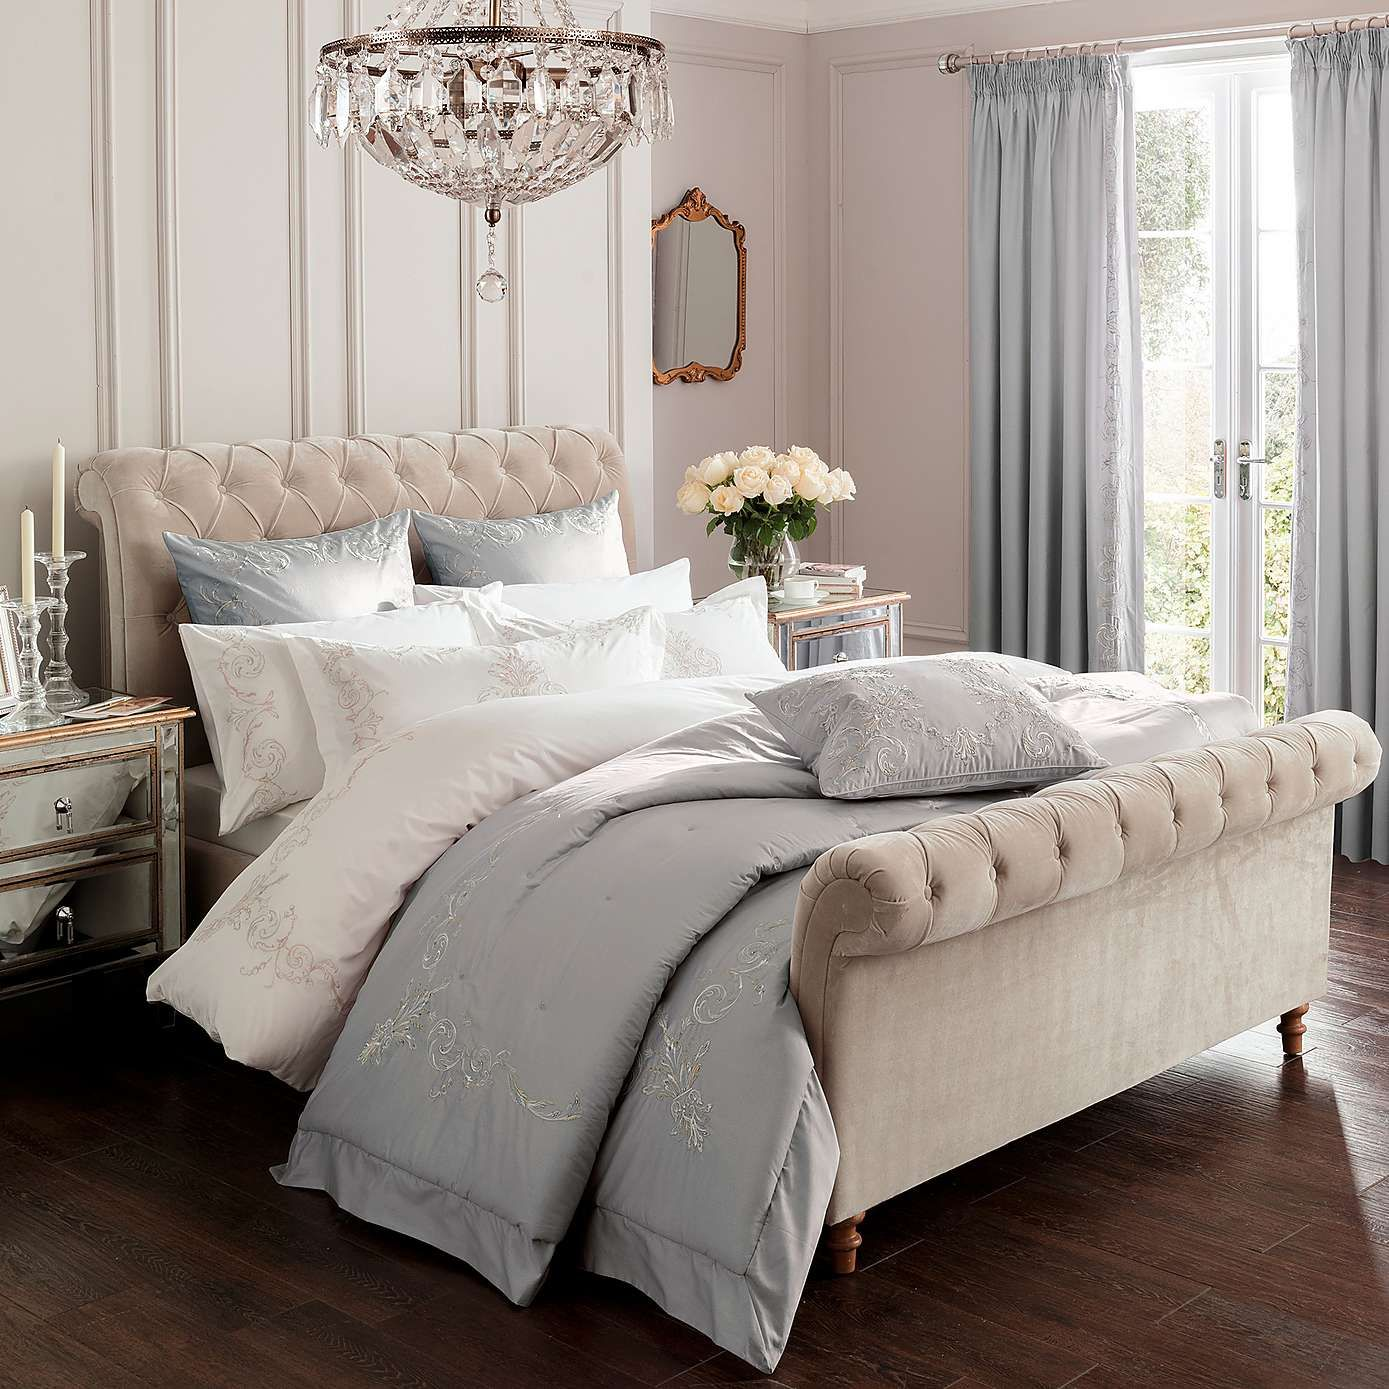 Dorma Grey Brocatello Bed Linen Collection Dunelm